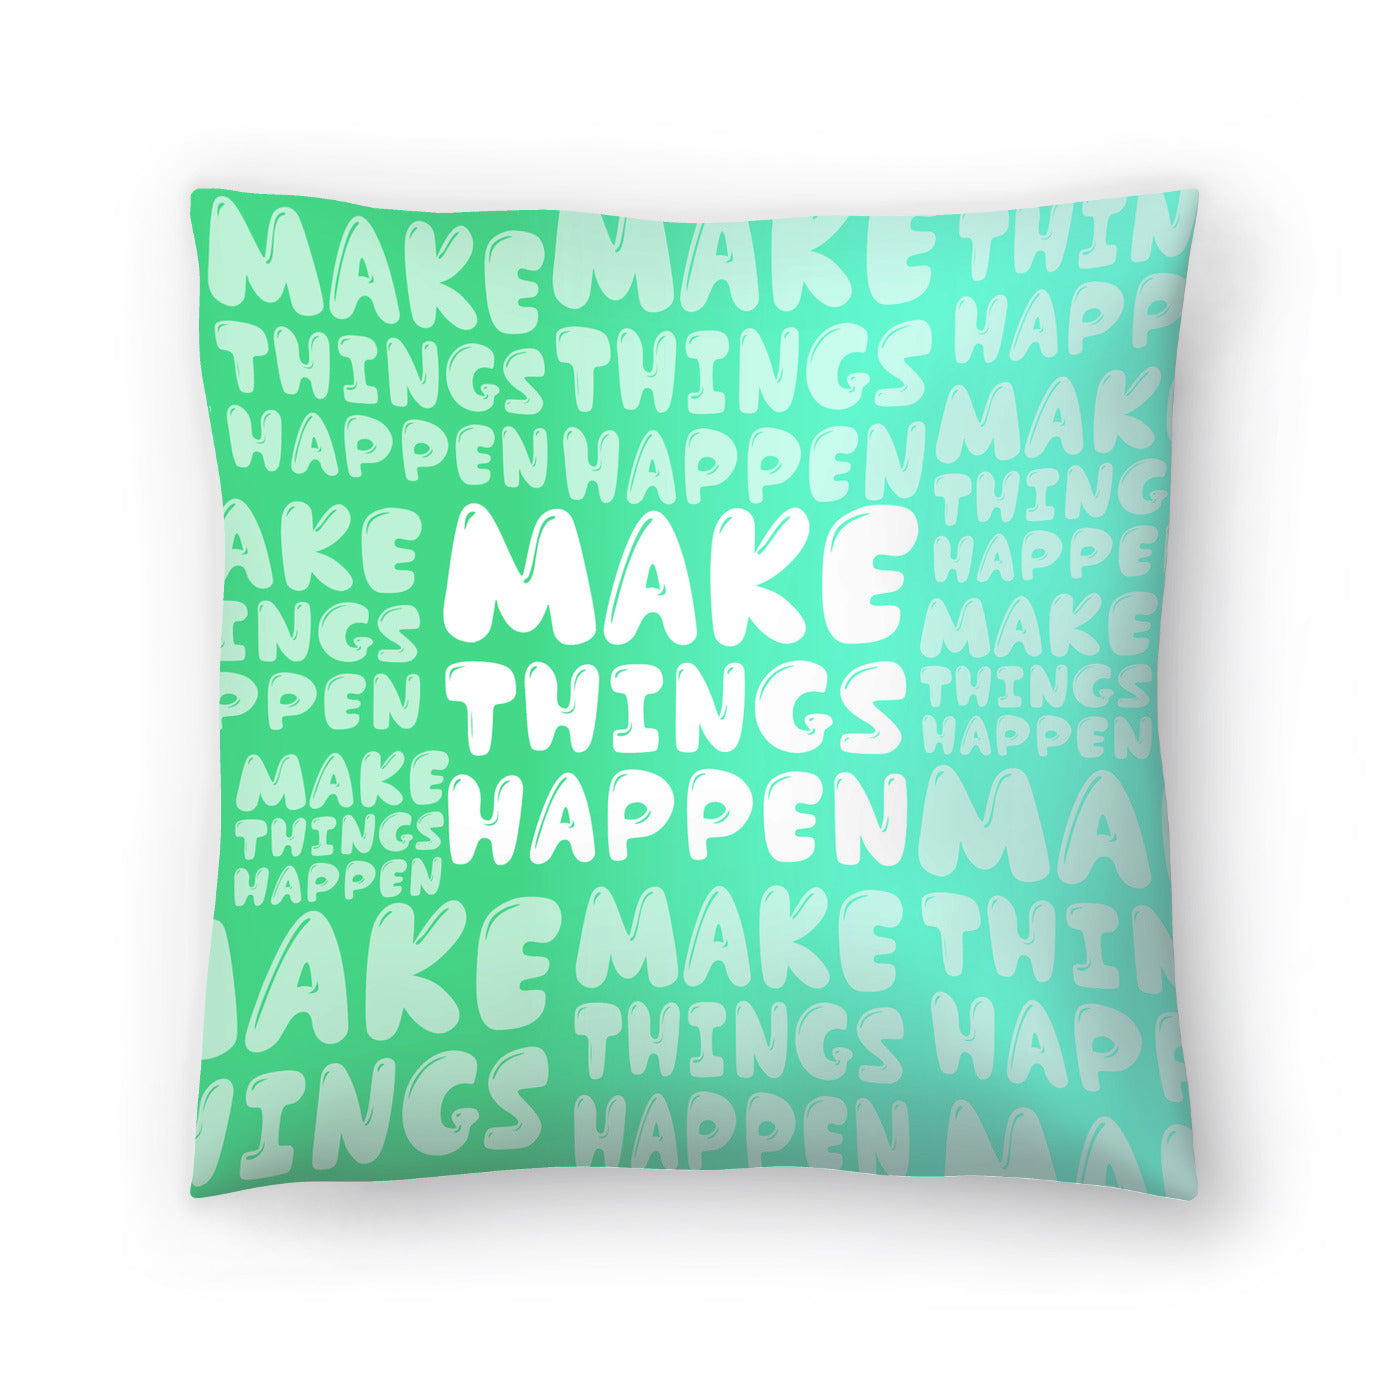 Make Things Happen by Susana Paz Decorative Pillow - Decorative Pillow - Americanflat